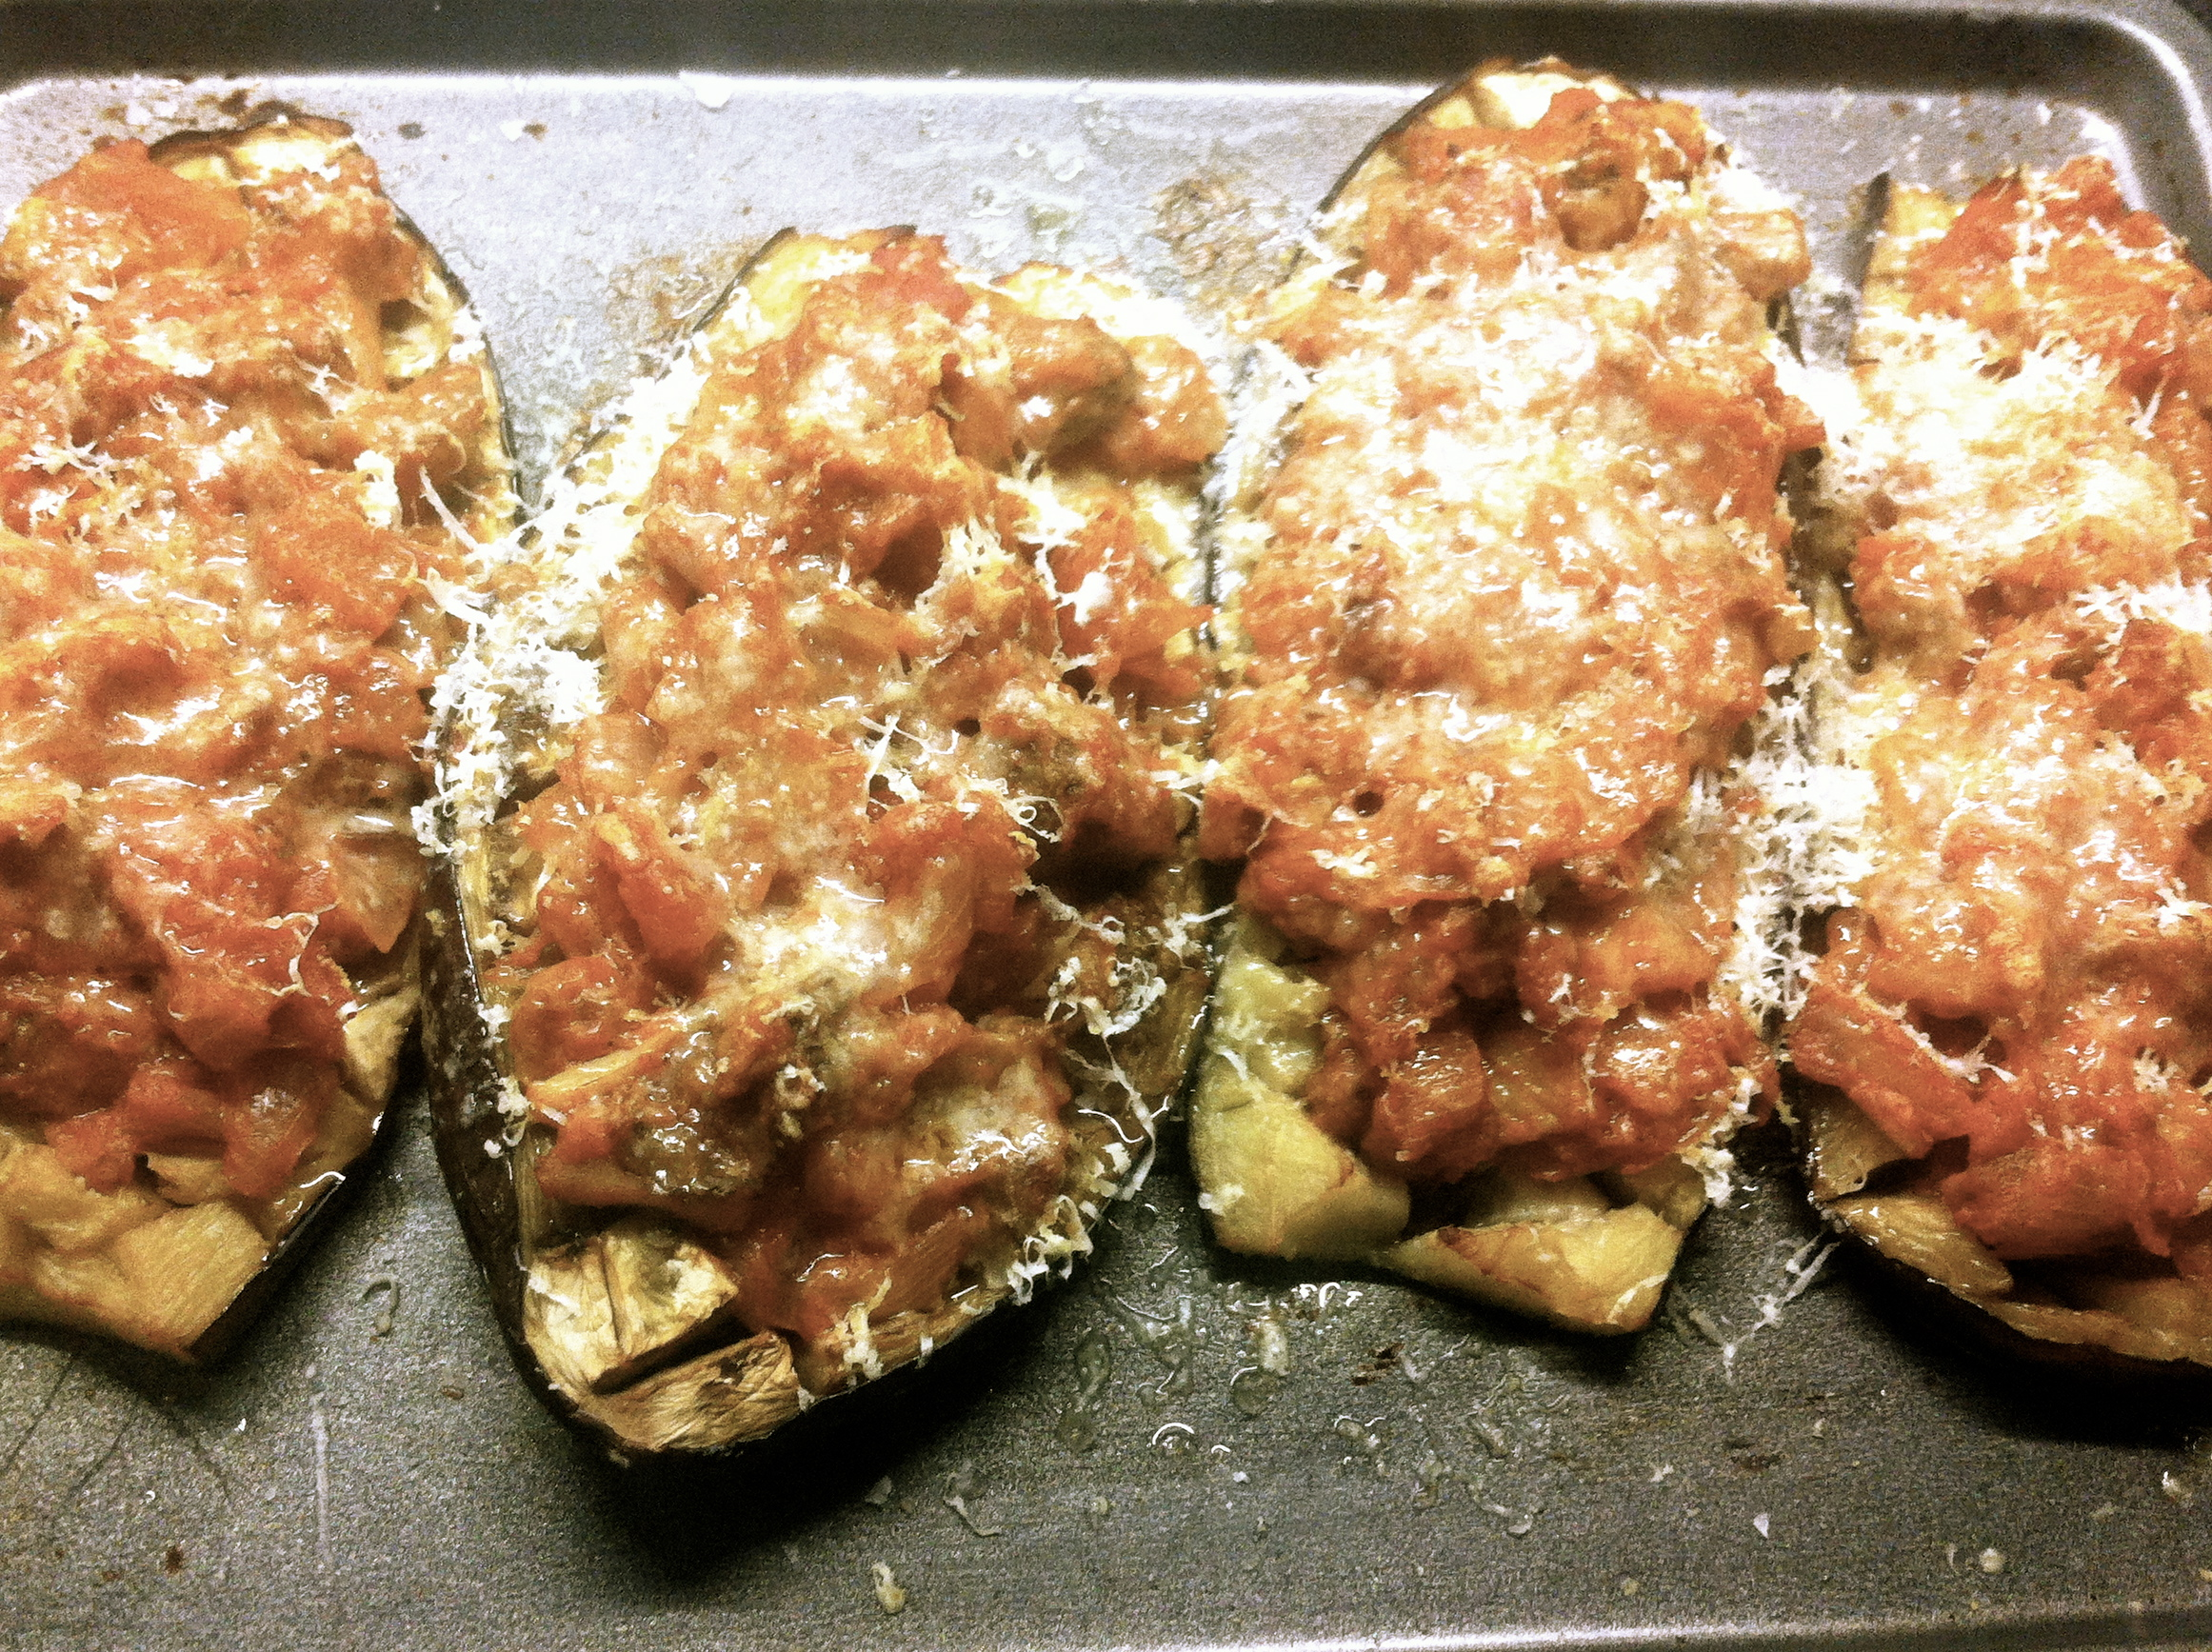 ... Lamb-Stuffed Aubergines With Manchego Cheese Recipes — Dishmaps